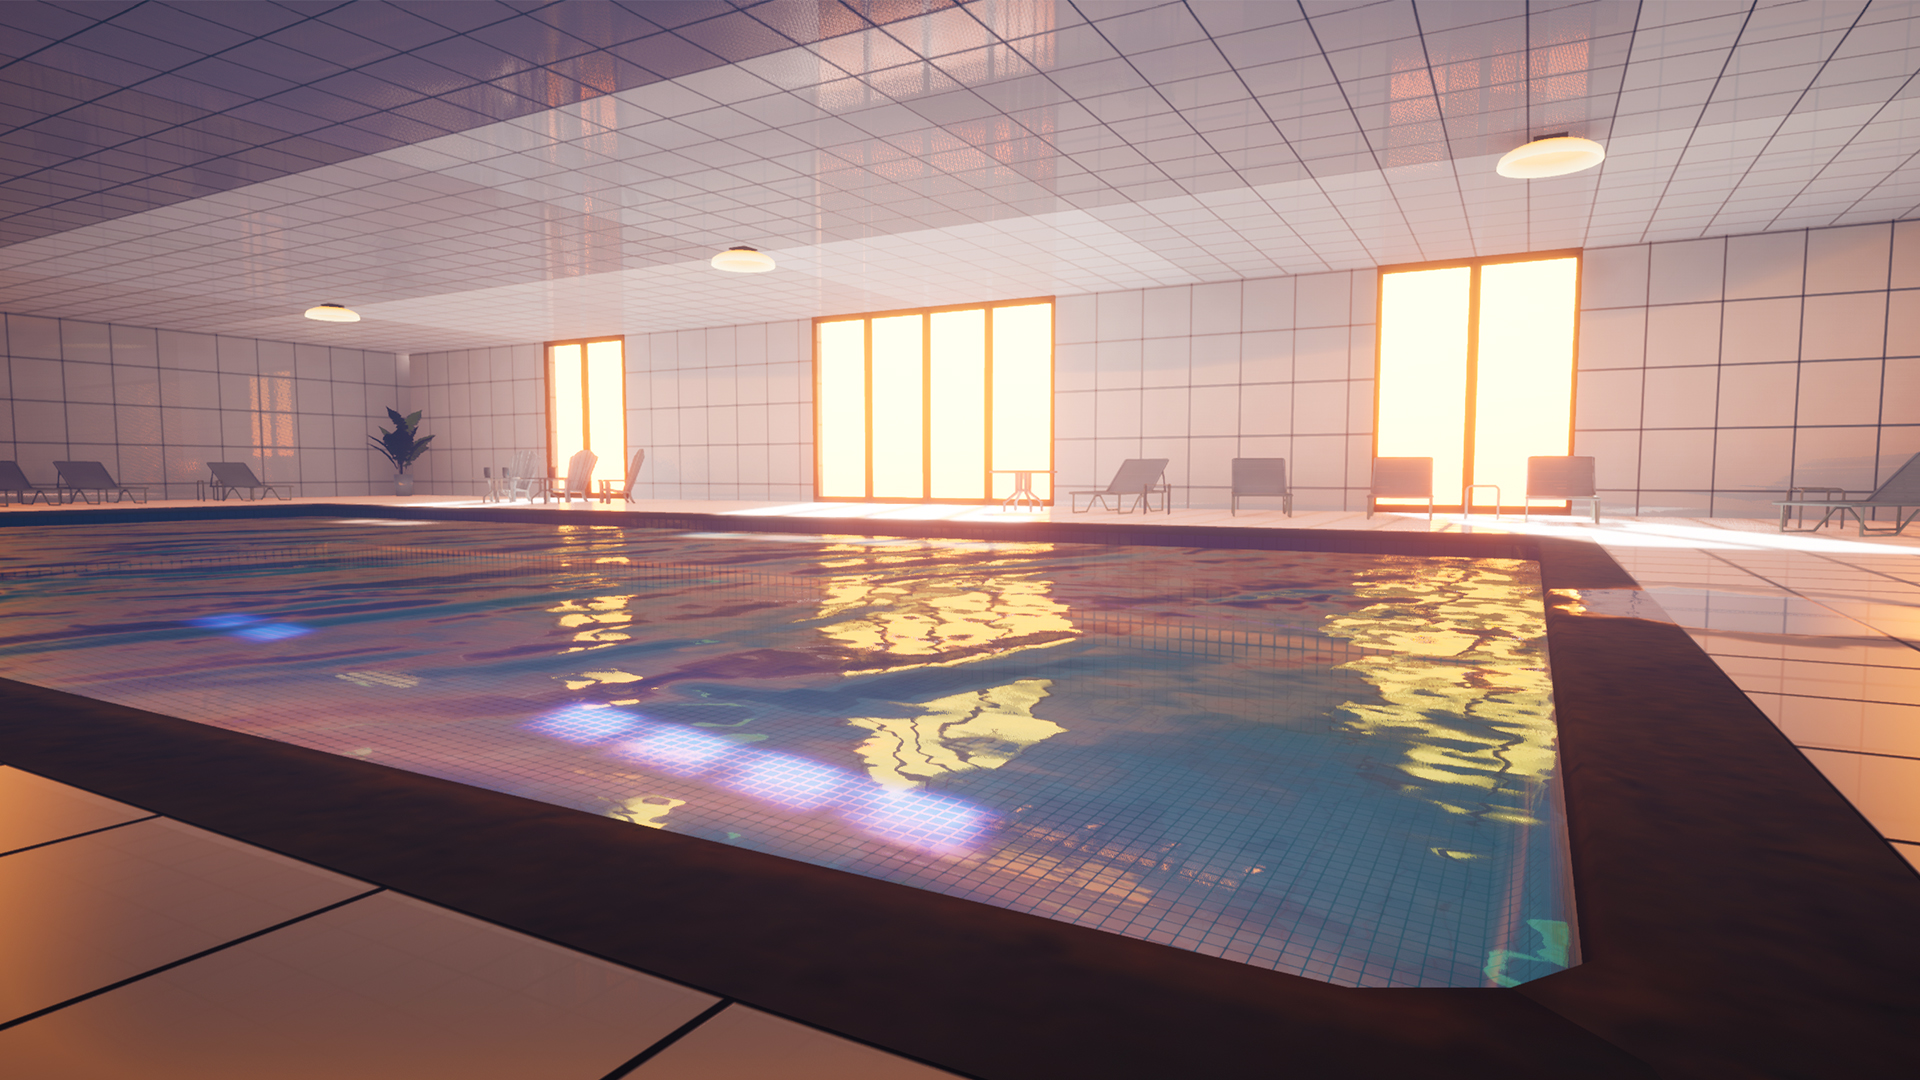 Looking at an indoor pool